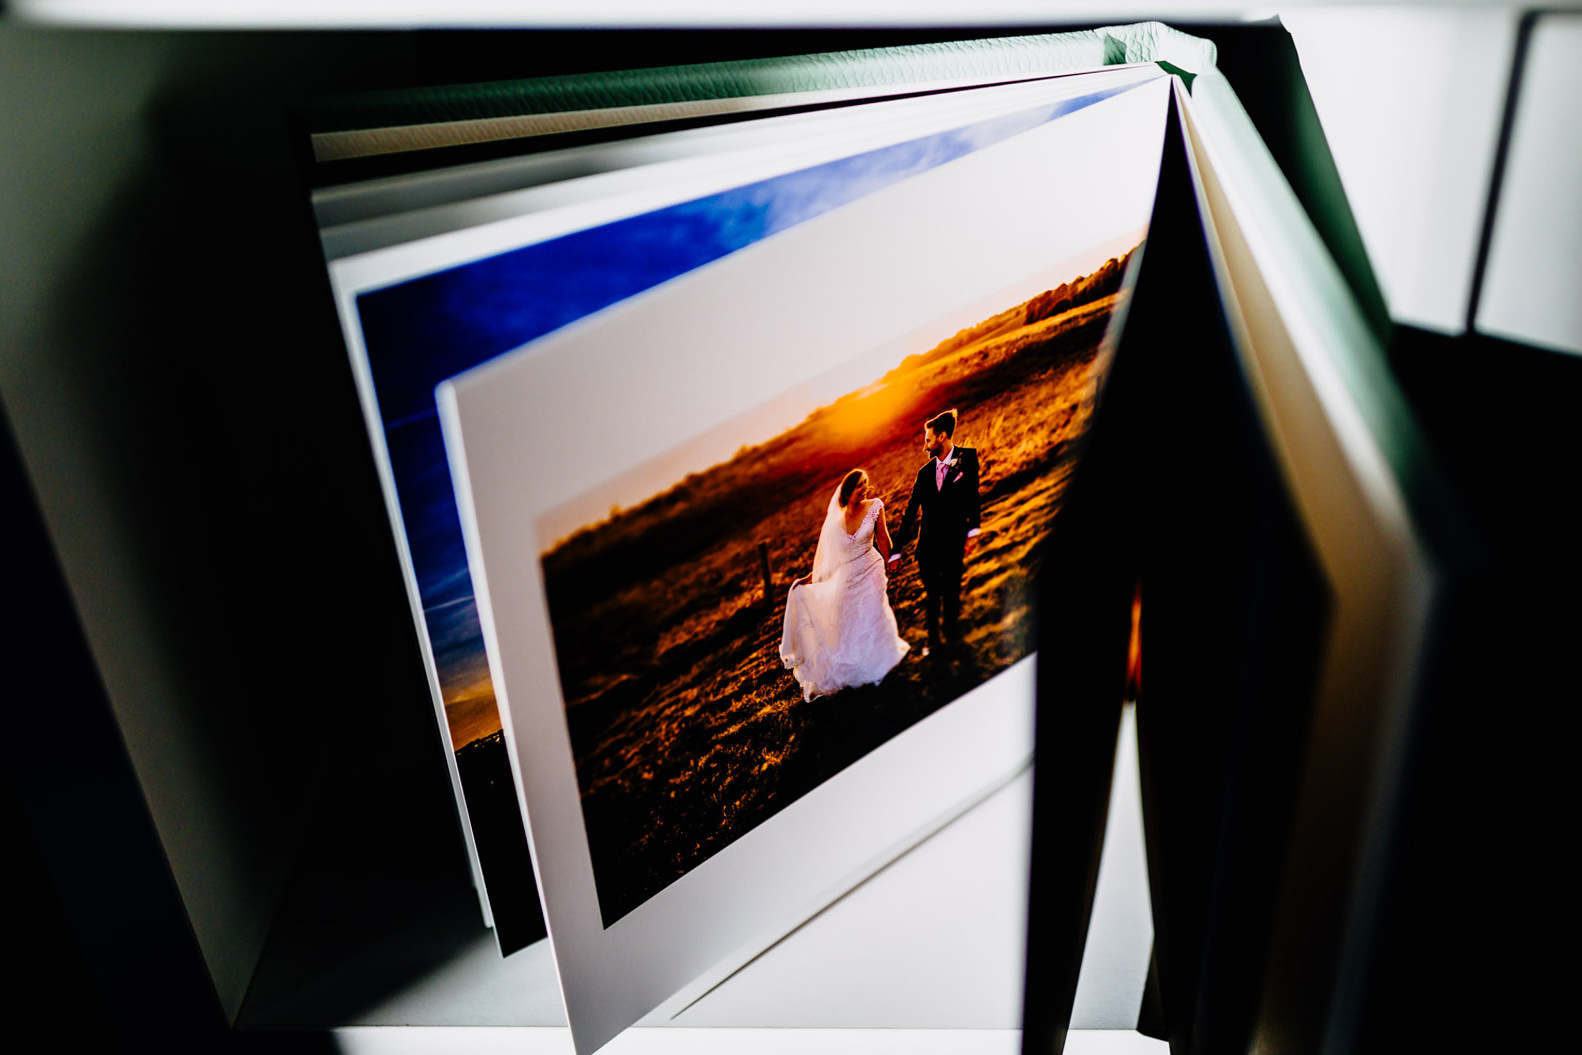 A wedding photo album by Elliot w patching photography